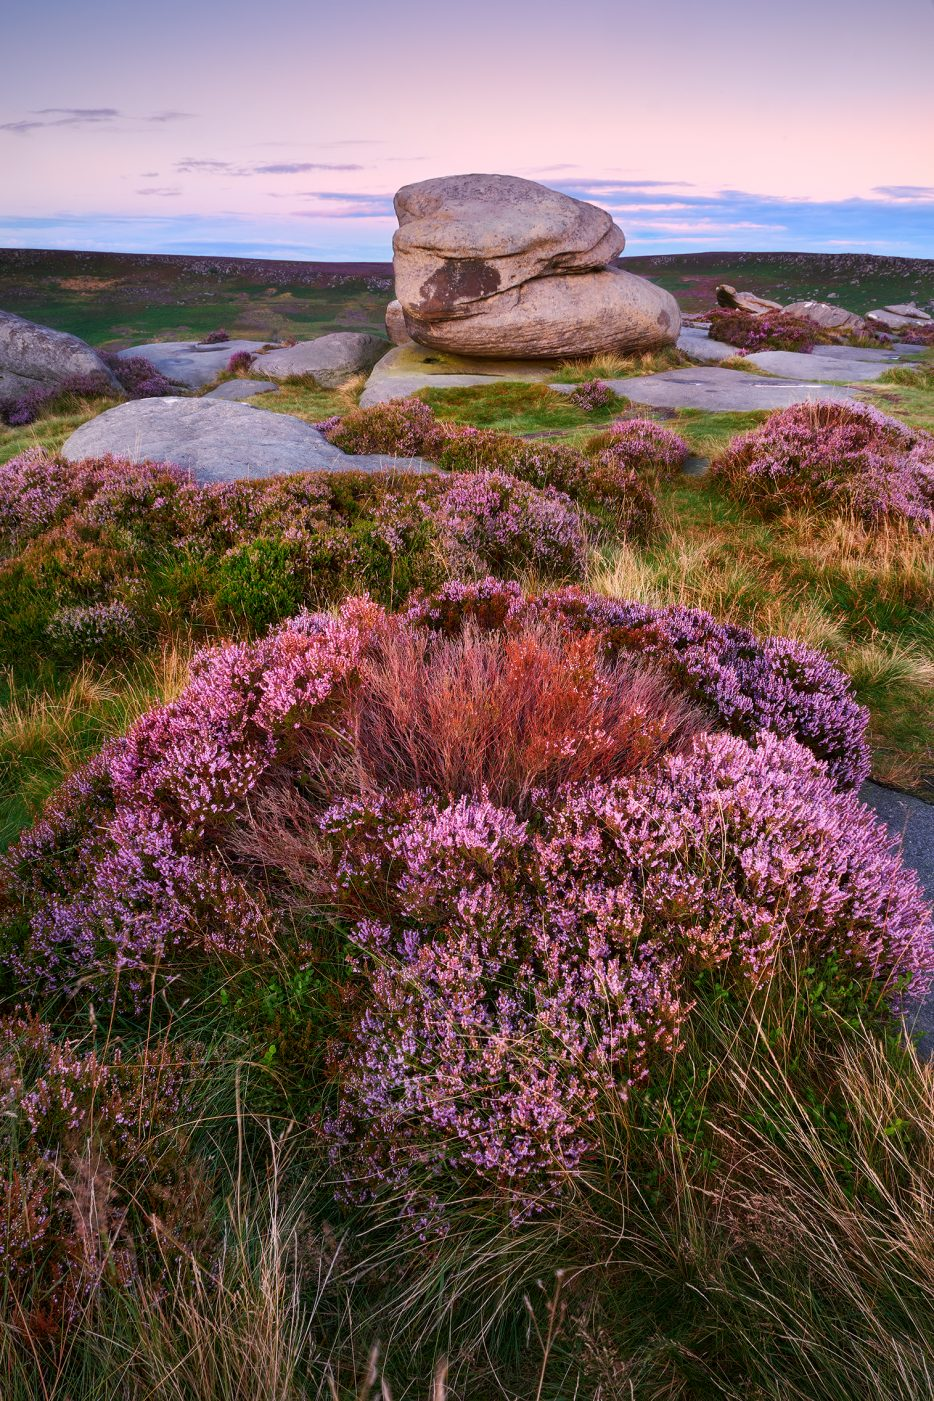 Heather on Carl Wark in the Peak District